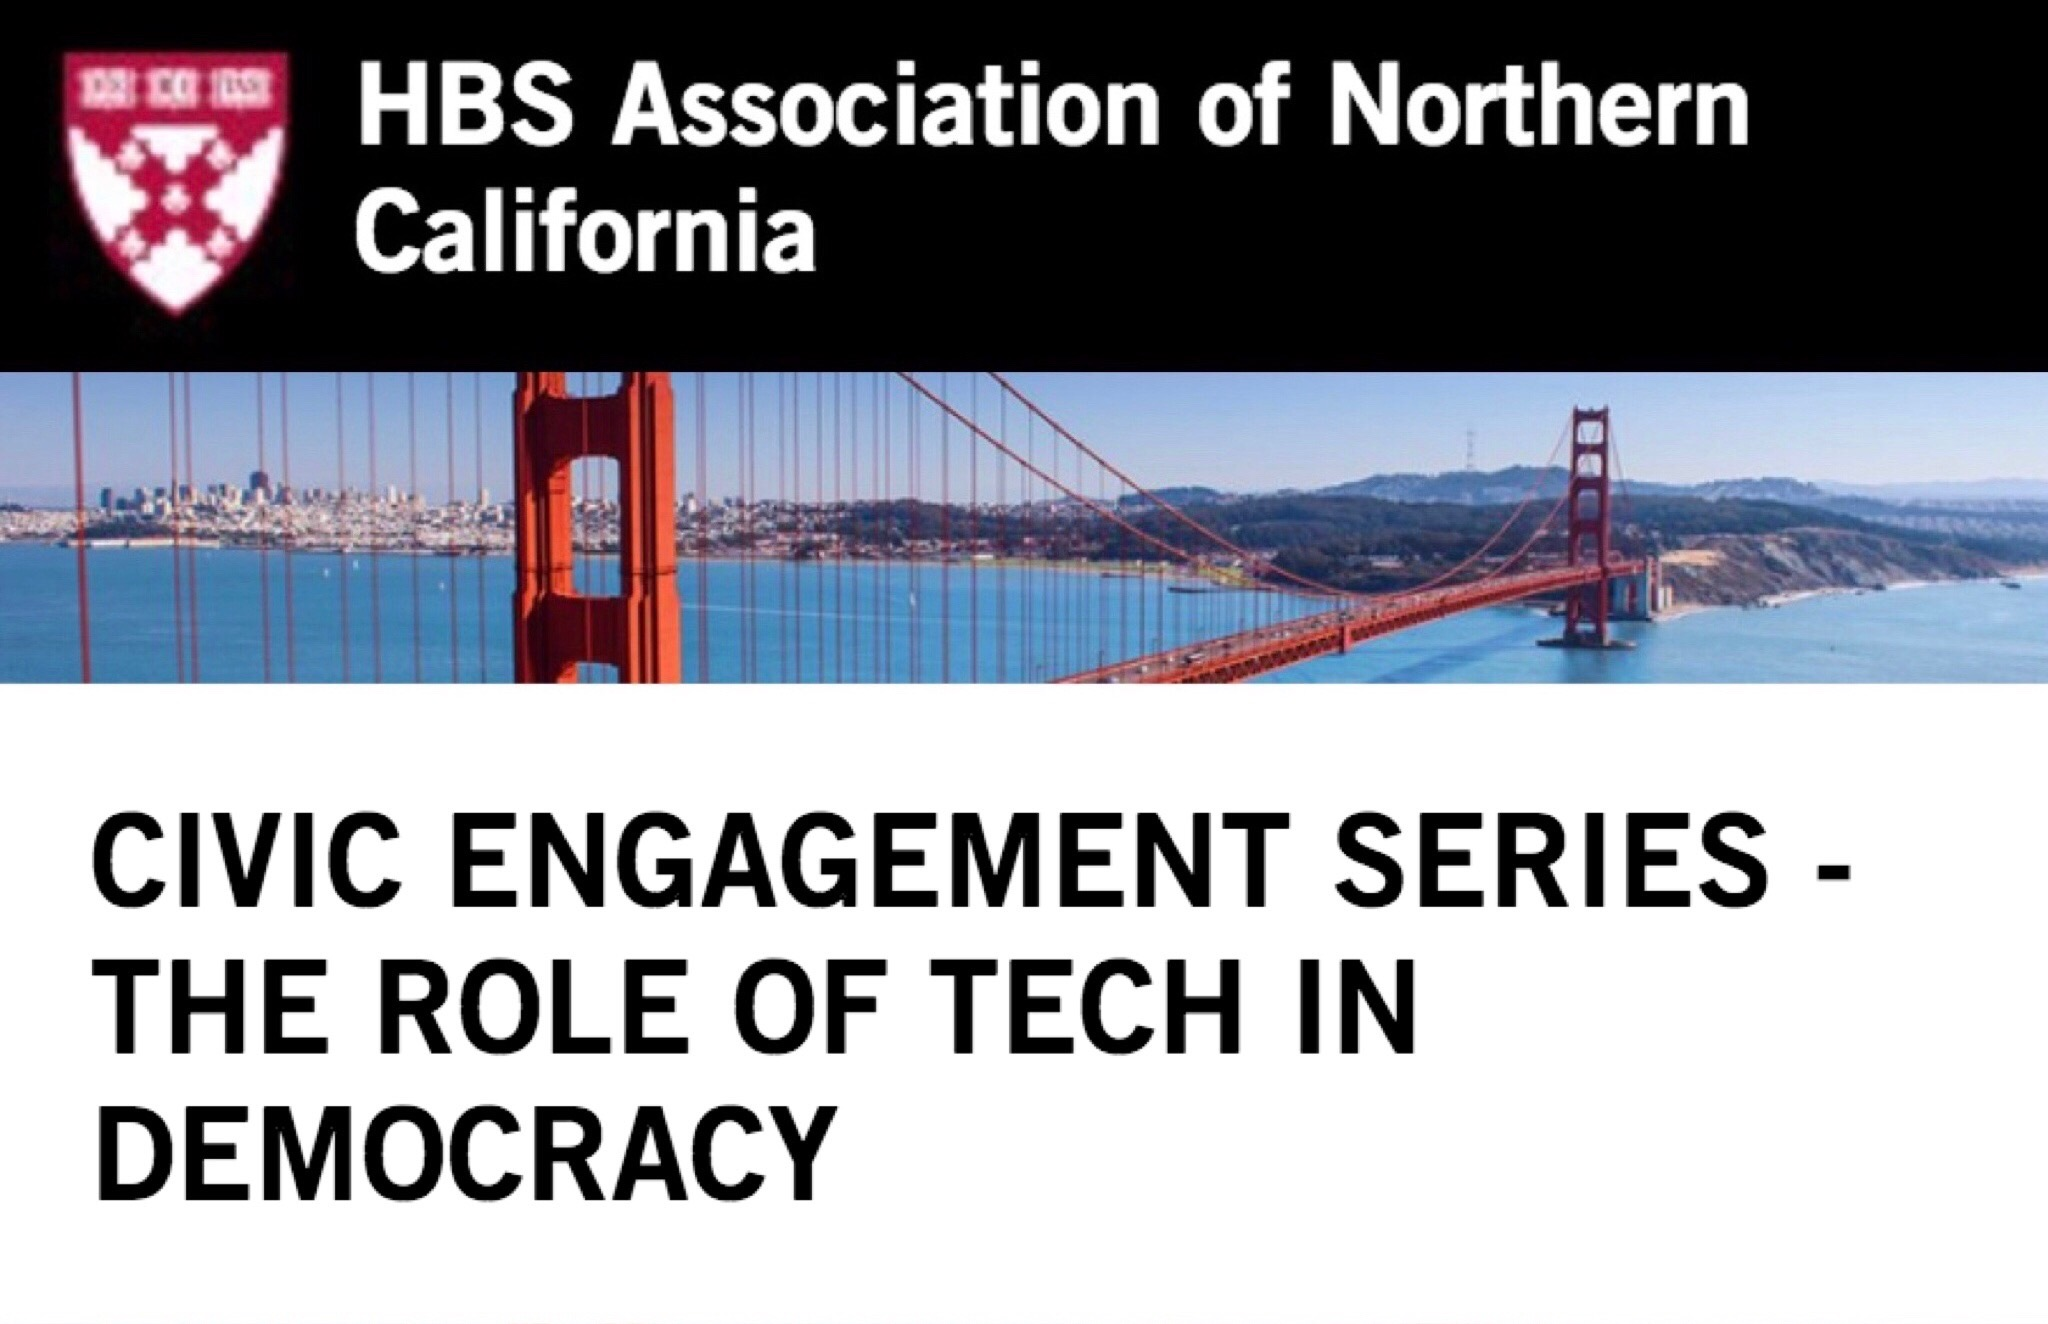 HBSA/NC Civic Engagement Series: The Role of Tech in Democracy - October 3rd, 2018, 6pm @ Morrison & Foerster LLP, San FranciscoThe Harvard Business School Association of Northern California presented an expert panel including Gisel Kordestani (CEO of Crowdpac), Minnie Ingersoll (COO of Code for America), and Steph Hannon (CPO of Strava & former CTO of the Hillary Clinton campaign). Shireen Santosham (CIO, City of San Jose), moderated the discussion around the emerging focus on civic tech and how it will continue to shape the way people engage with government and each other.